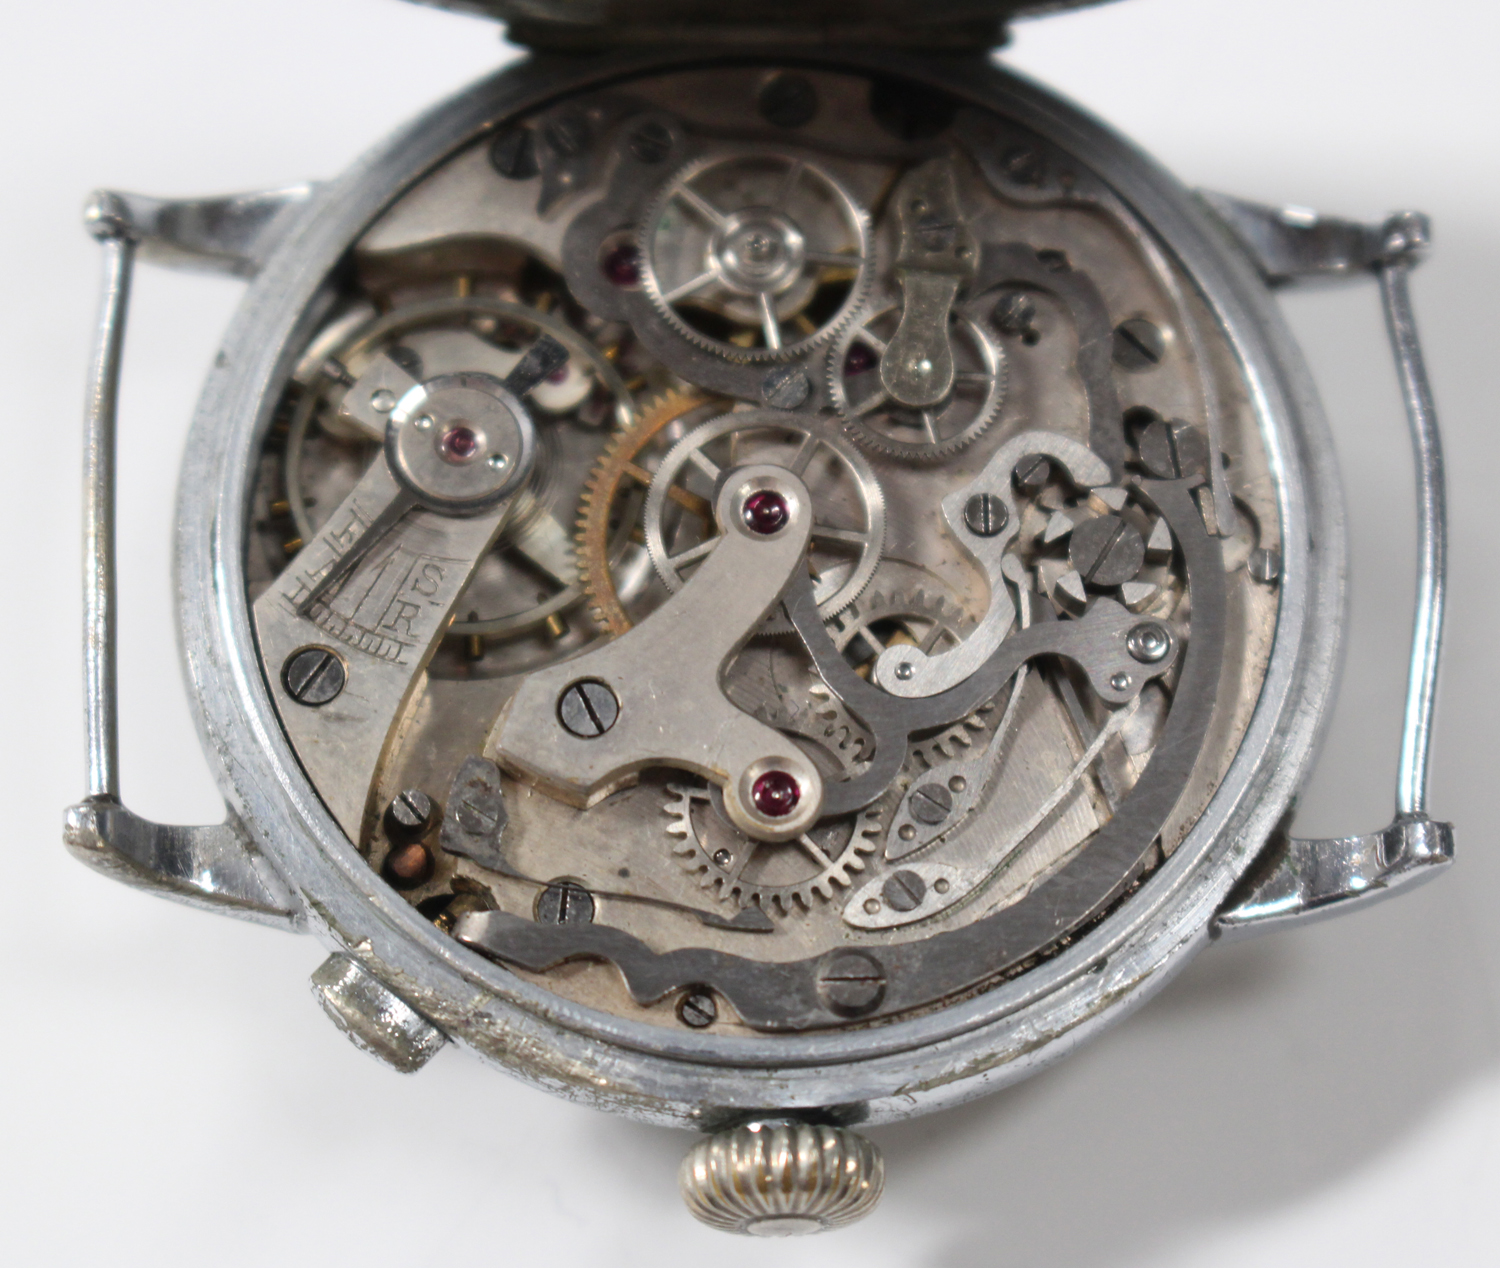 Lot 1049 - A Roskopf Wille Frères steel cased gentleman's chronograph wristwatch with an unsigned jewelled